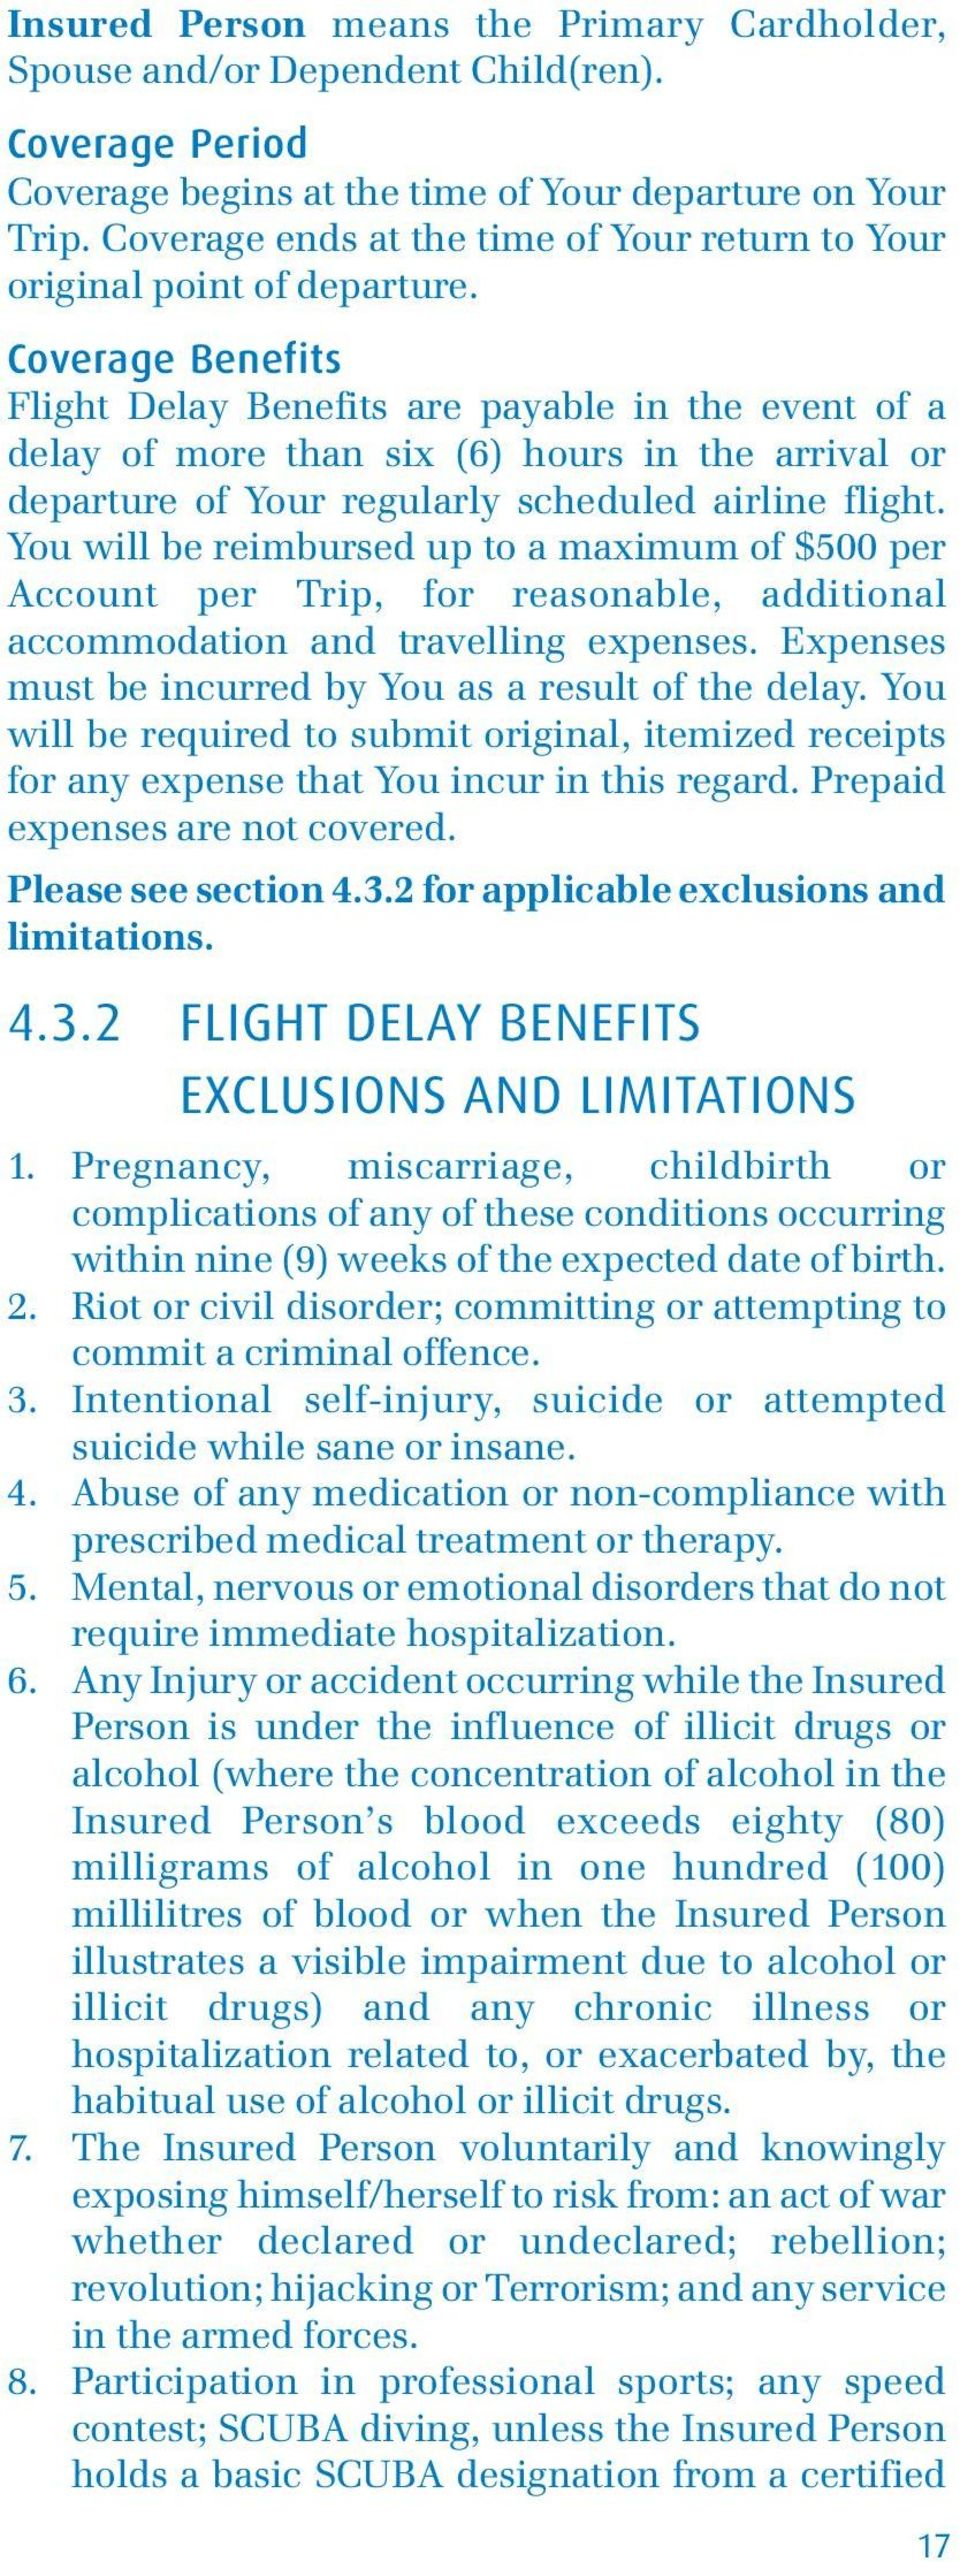 Coverage Benefits Flight Delay Benefits are payable in the event of a delay of more than six (6) hours in the arrival or departure of Your regularly scheduled airline flight.